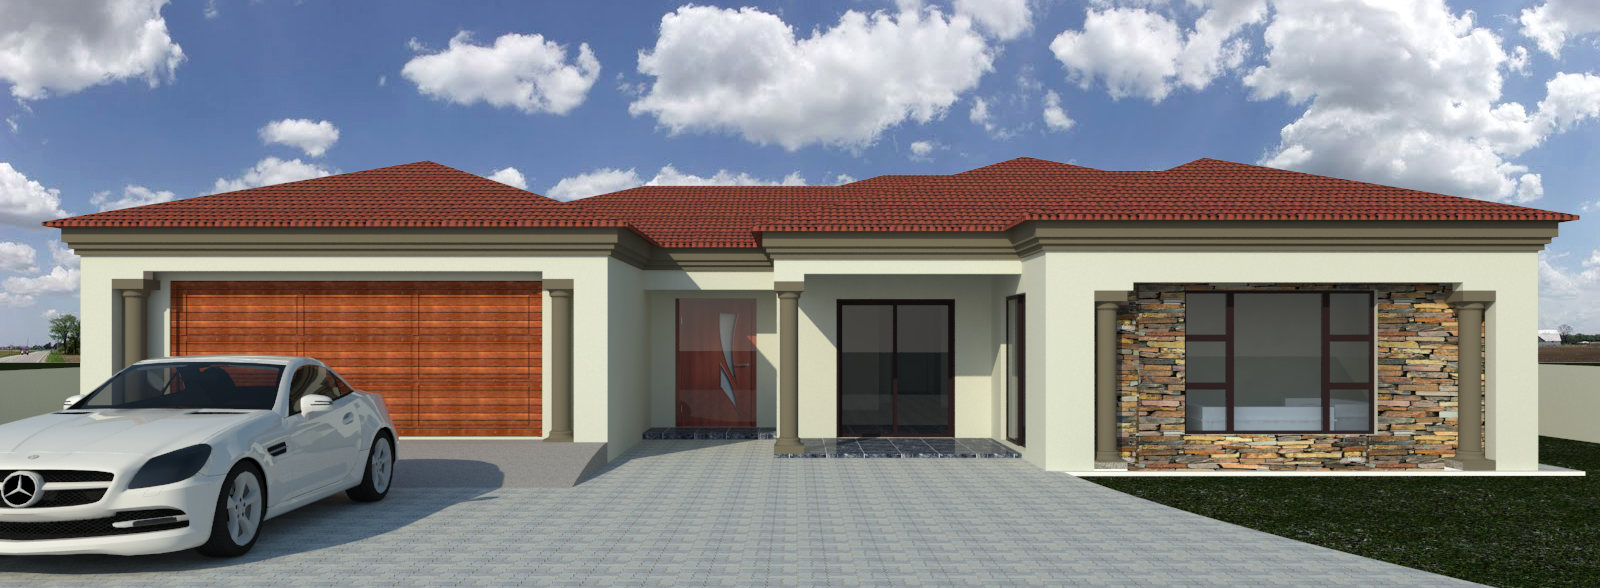 House Plans South Africa Most Affordable Way Build Simple